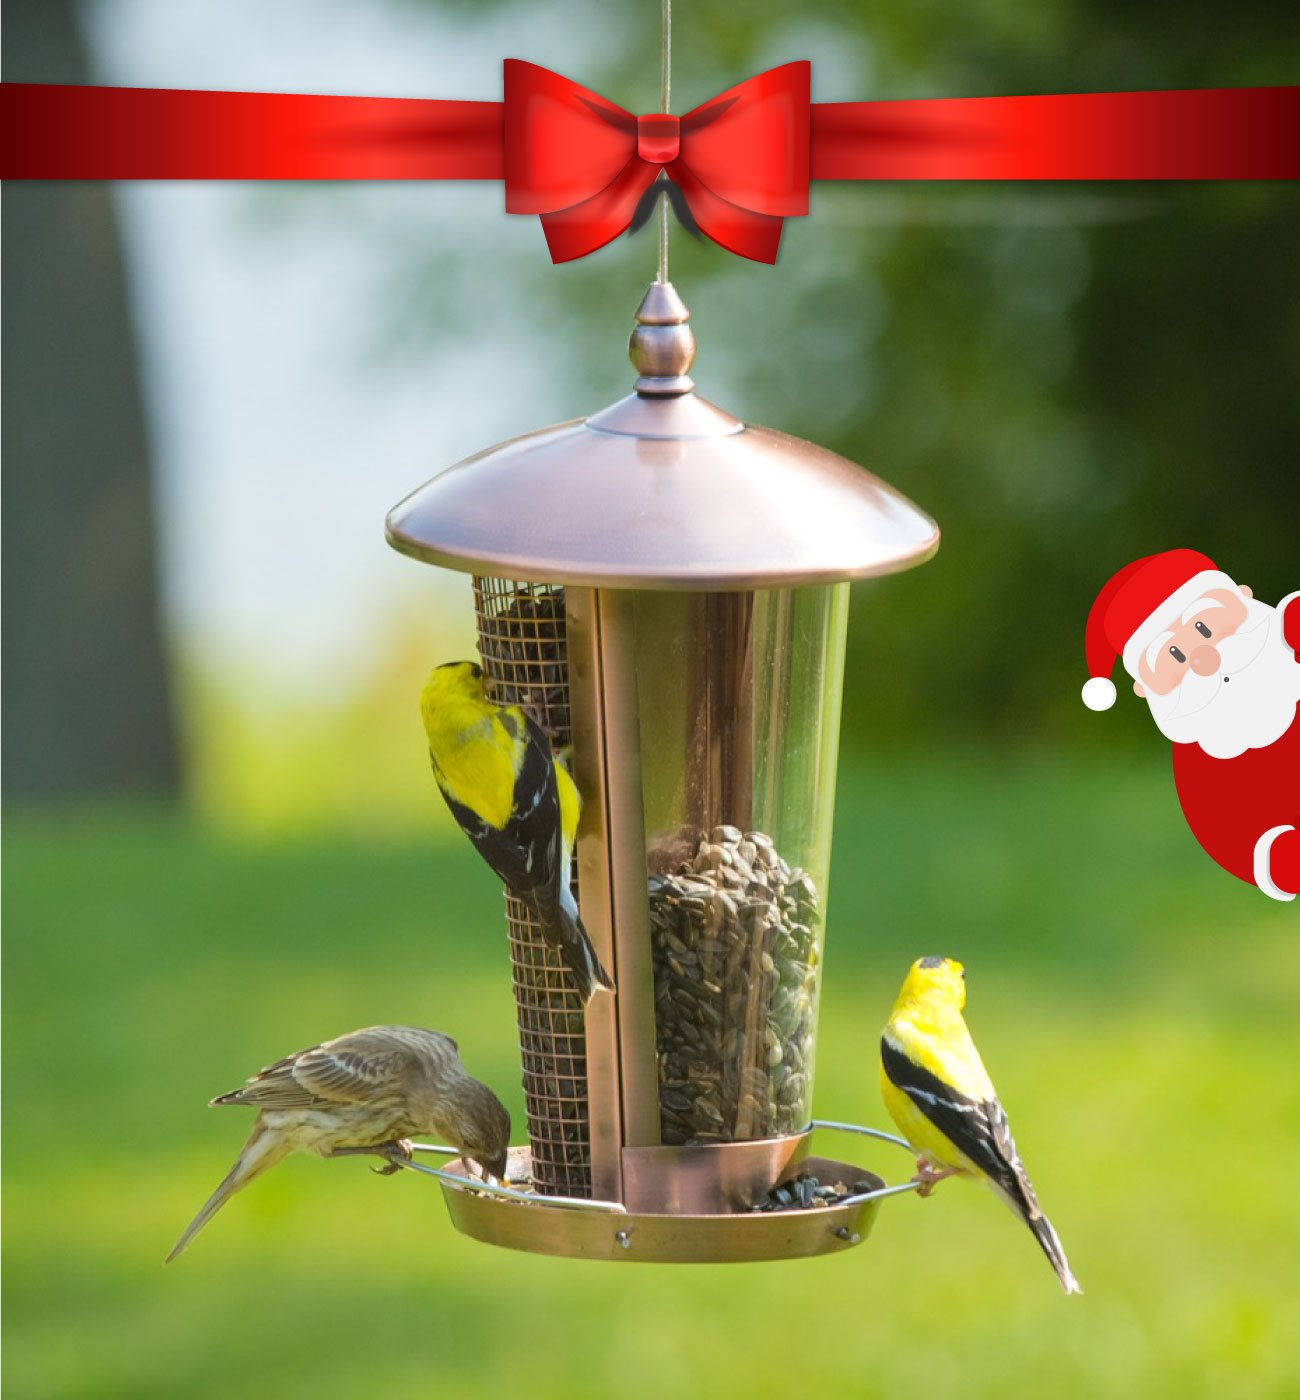 Wild Bird Feeder Attract More Birds Perfect for Garden Decoration, Great Bird Feeders for Small & Medium Birds, Easy to Clean and Fill Bird Feeder Hanger Included Great Gift & Fun Idea!